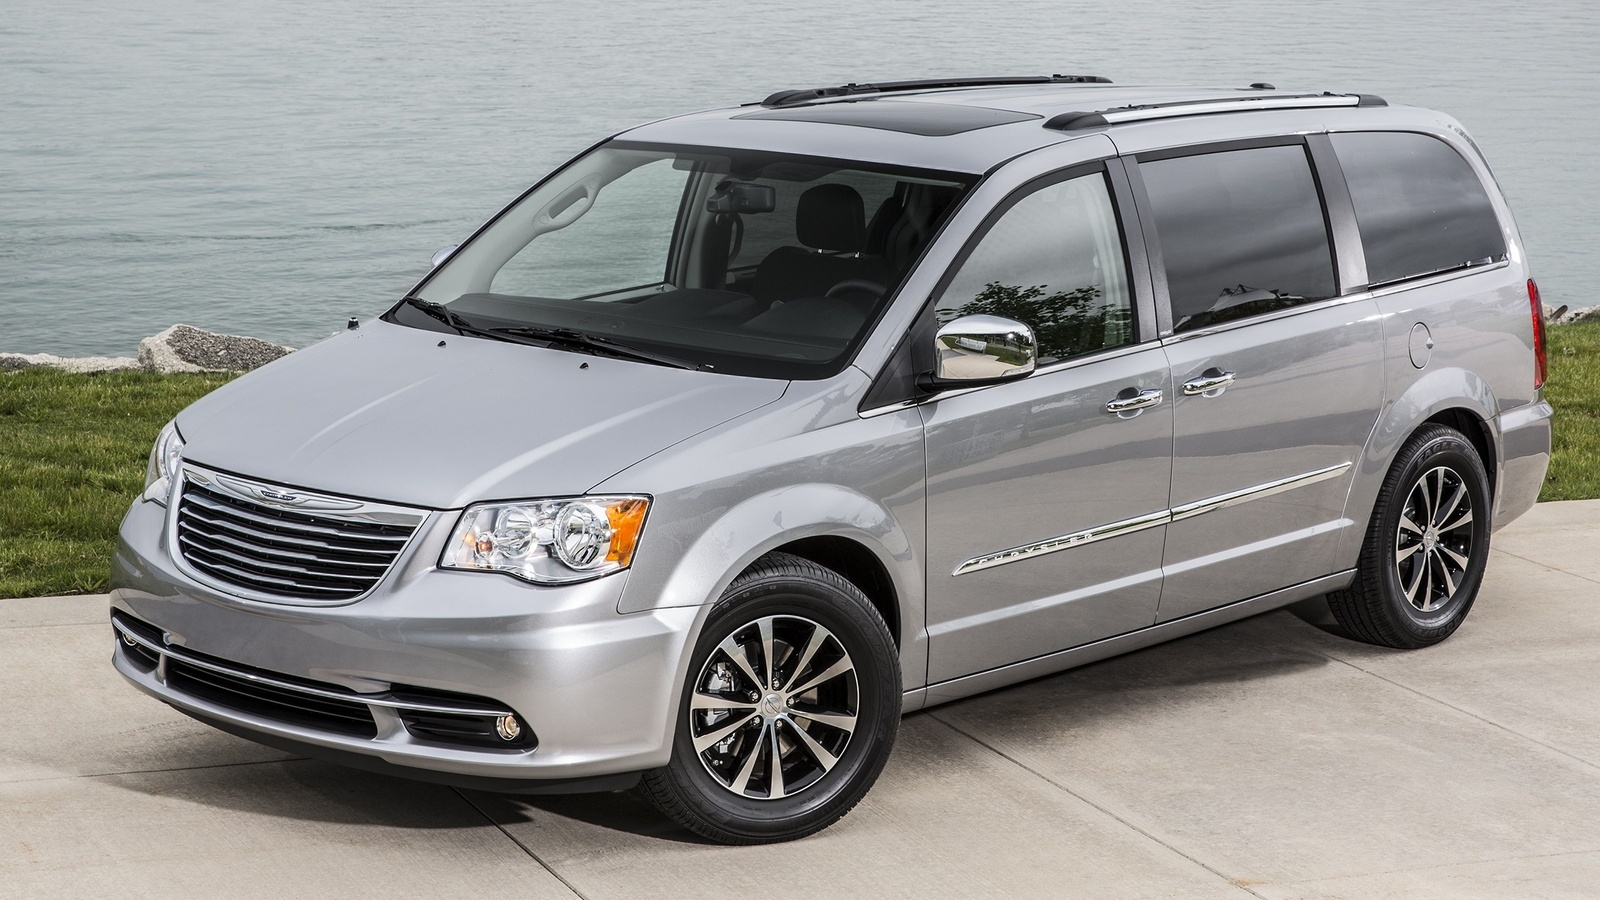 2015 chrysler town amp country   overview   cargurus